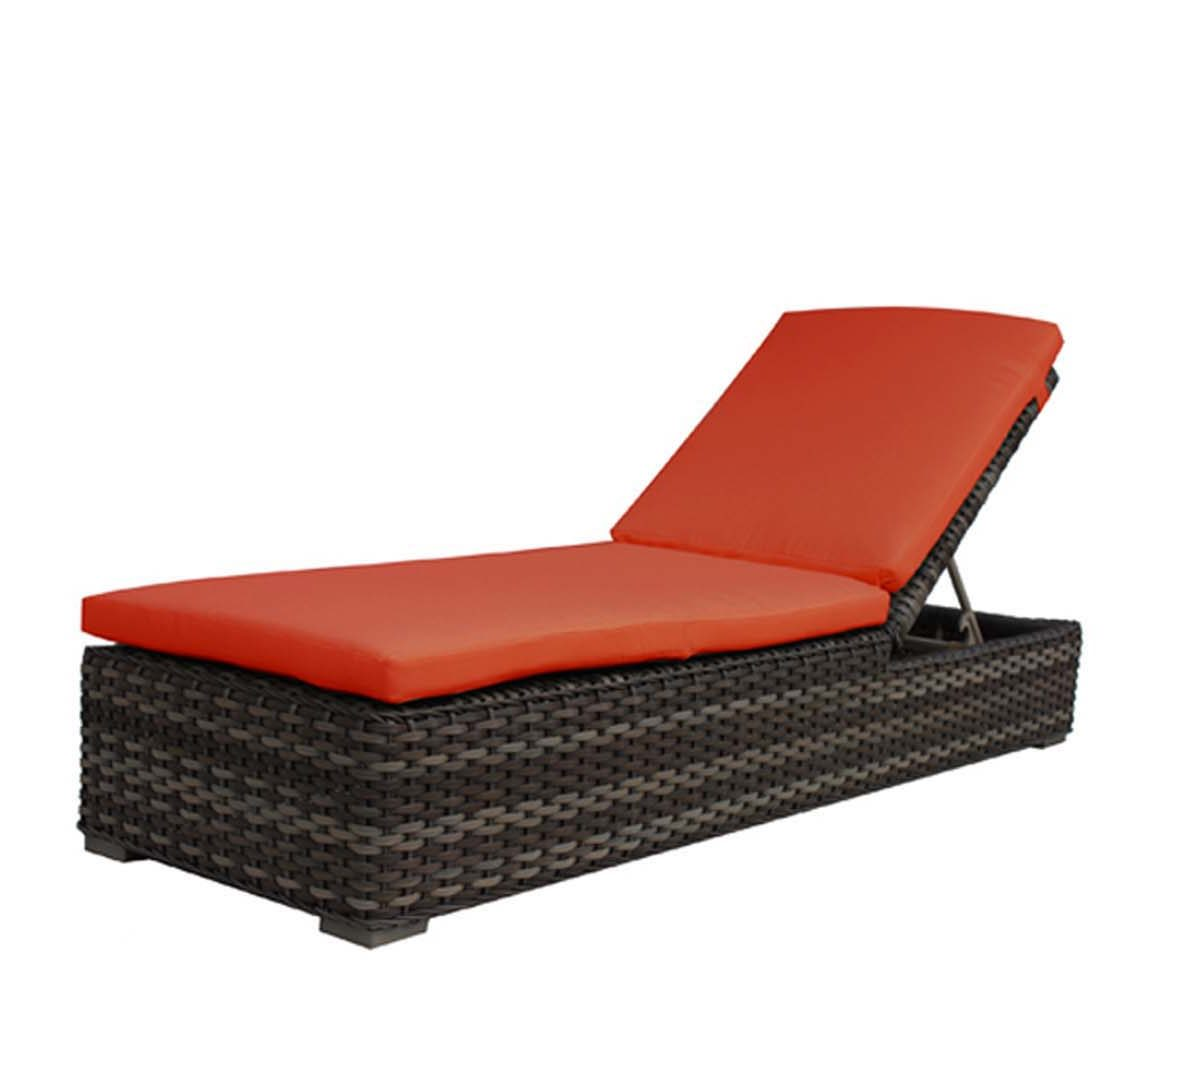 Nottigham adjustable lounger in taupe color wicker with orange cushion.